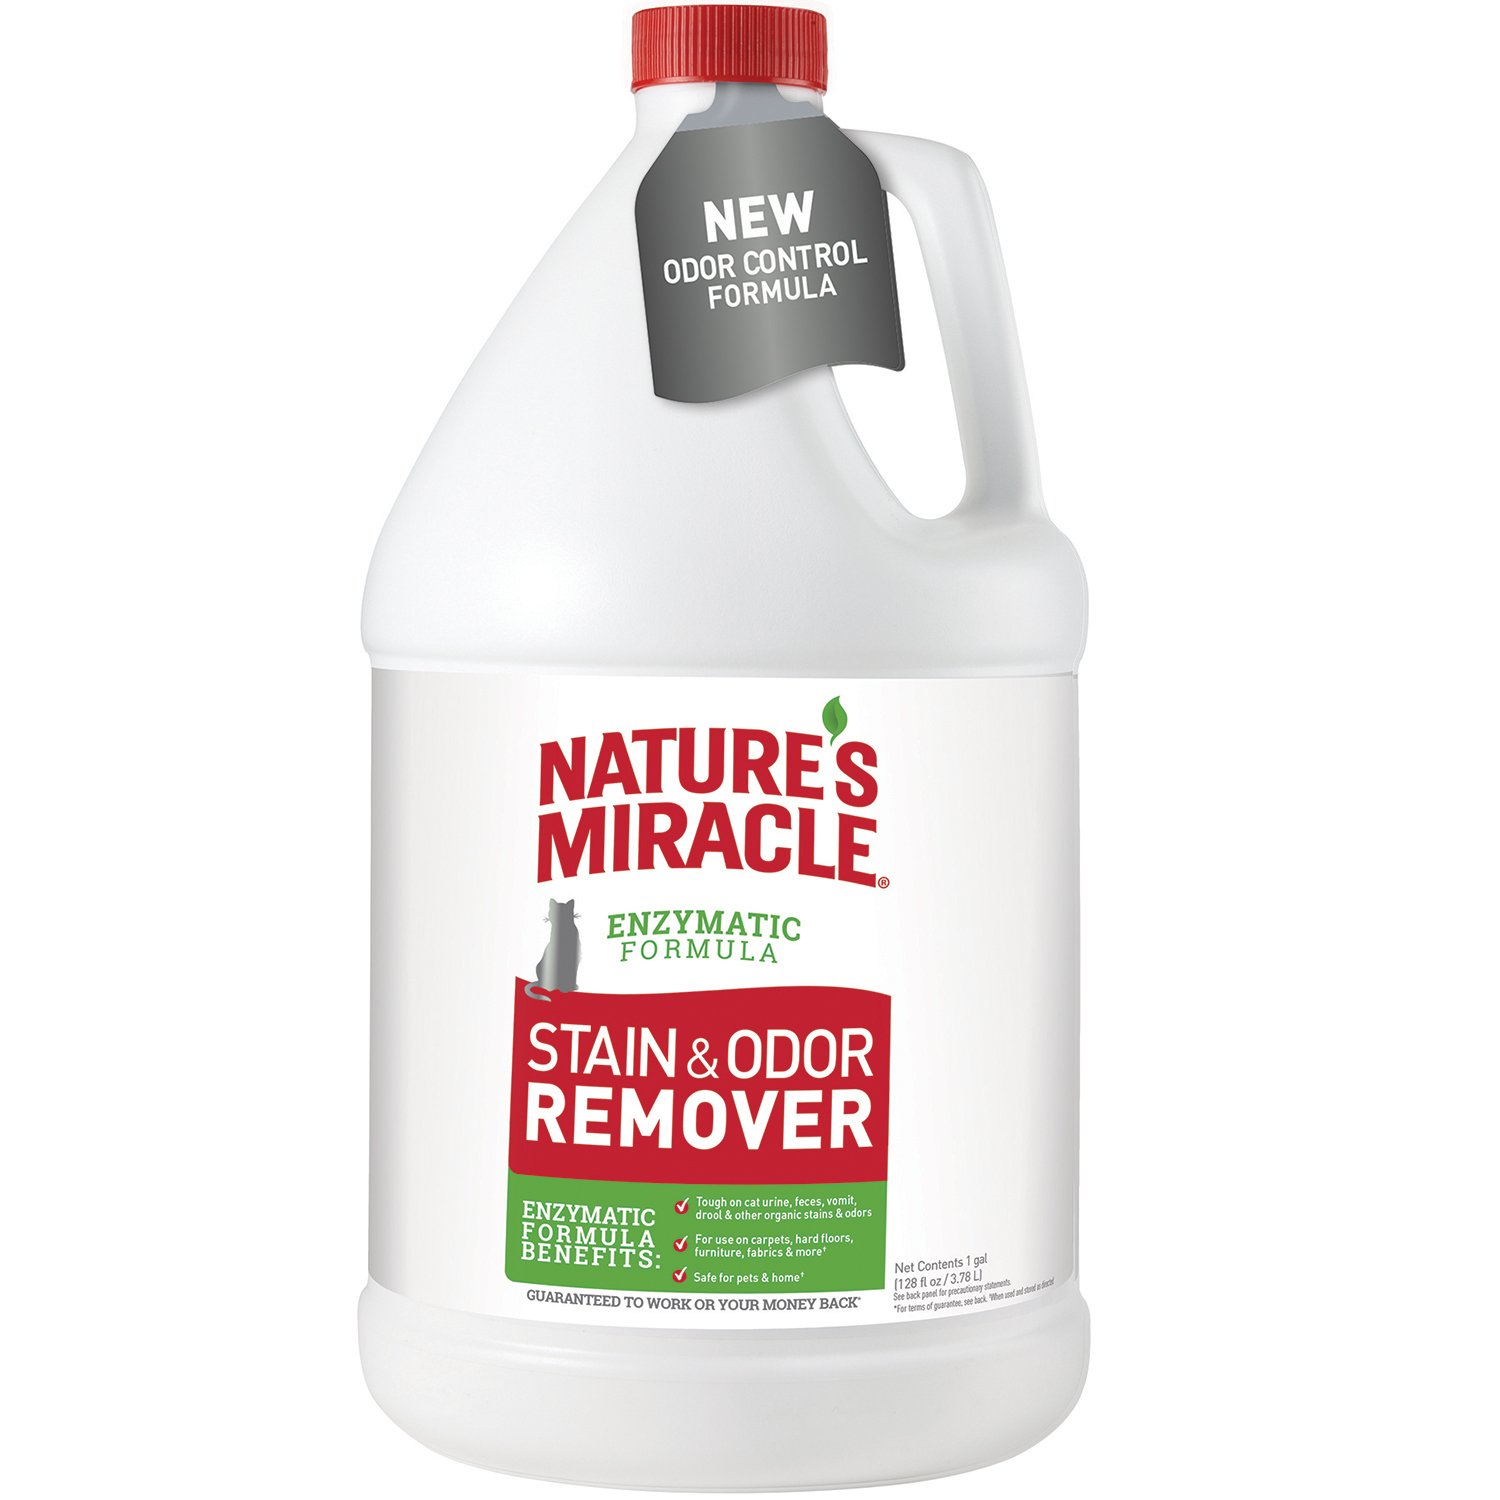 Need odor remover for business 100